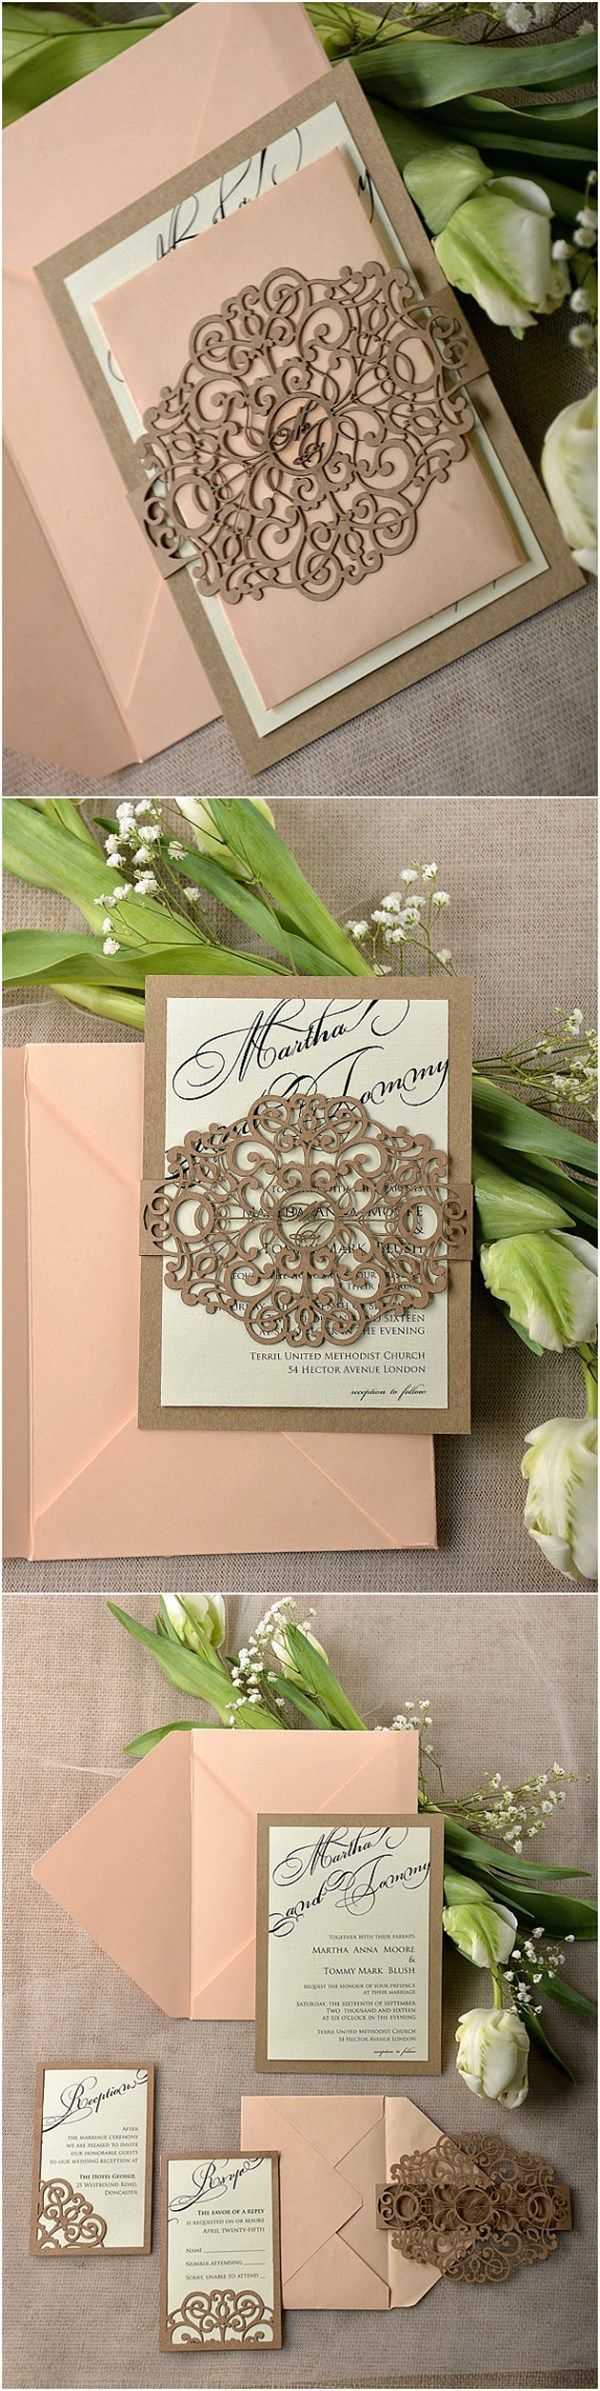 15 Our Absolutely Favorite Rustic Wedding Invitations | http://www.deerpearlflowers.com/rustic-wedding-invitations/: